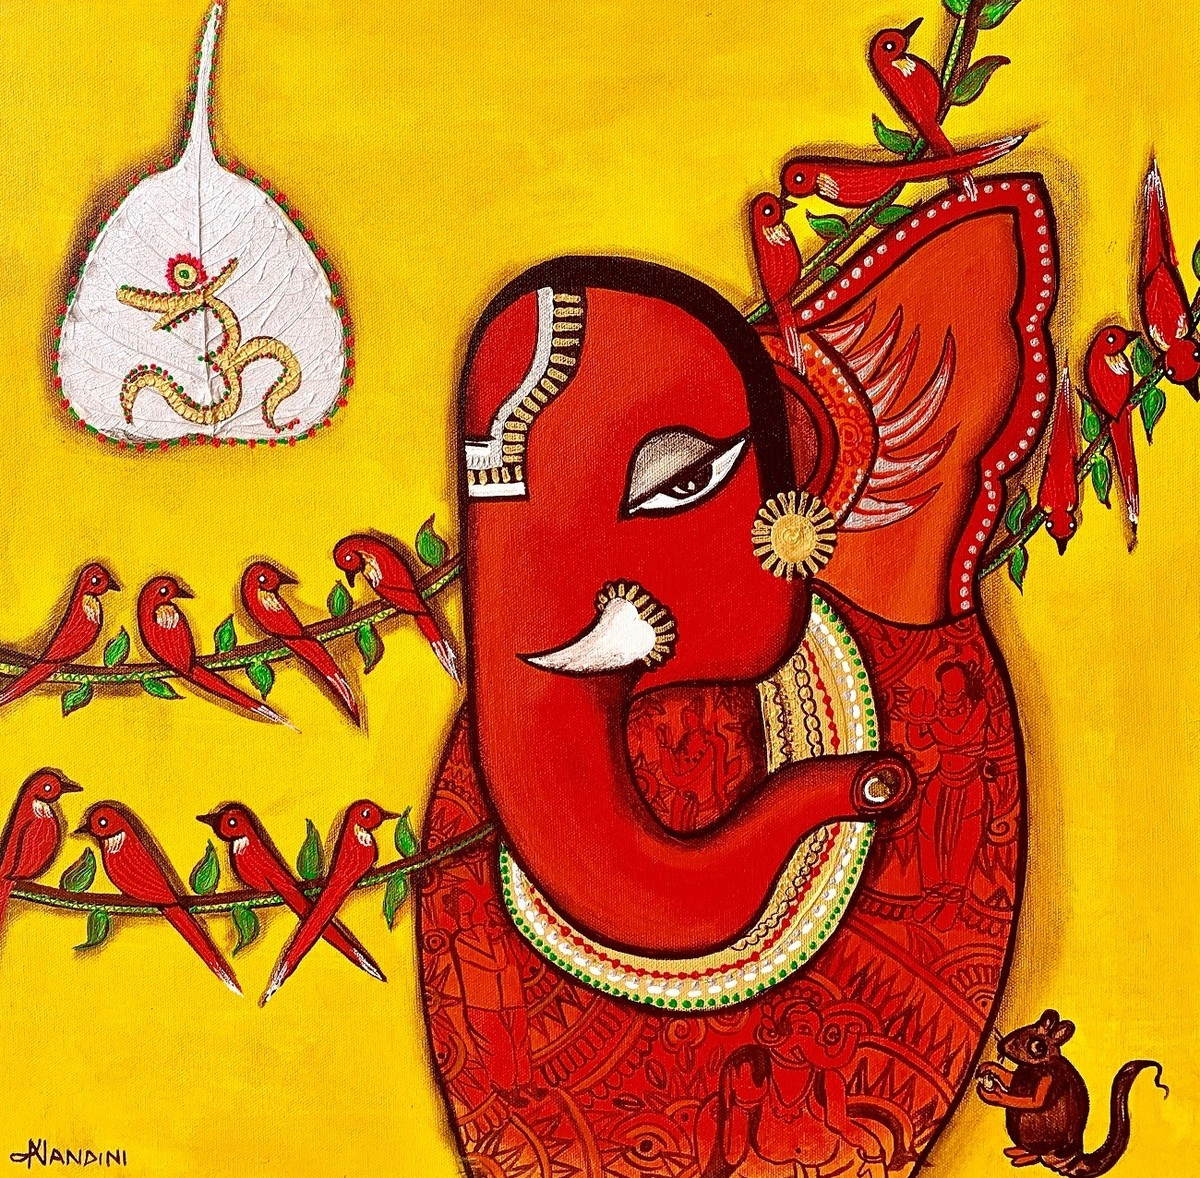 Ganesha Bhakti [dna32] by Nandini, Expressionism Painting, Mixed Media on Canvas, Ripe Lemon color